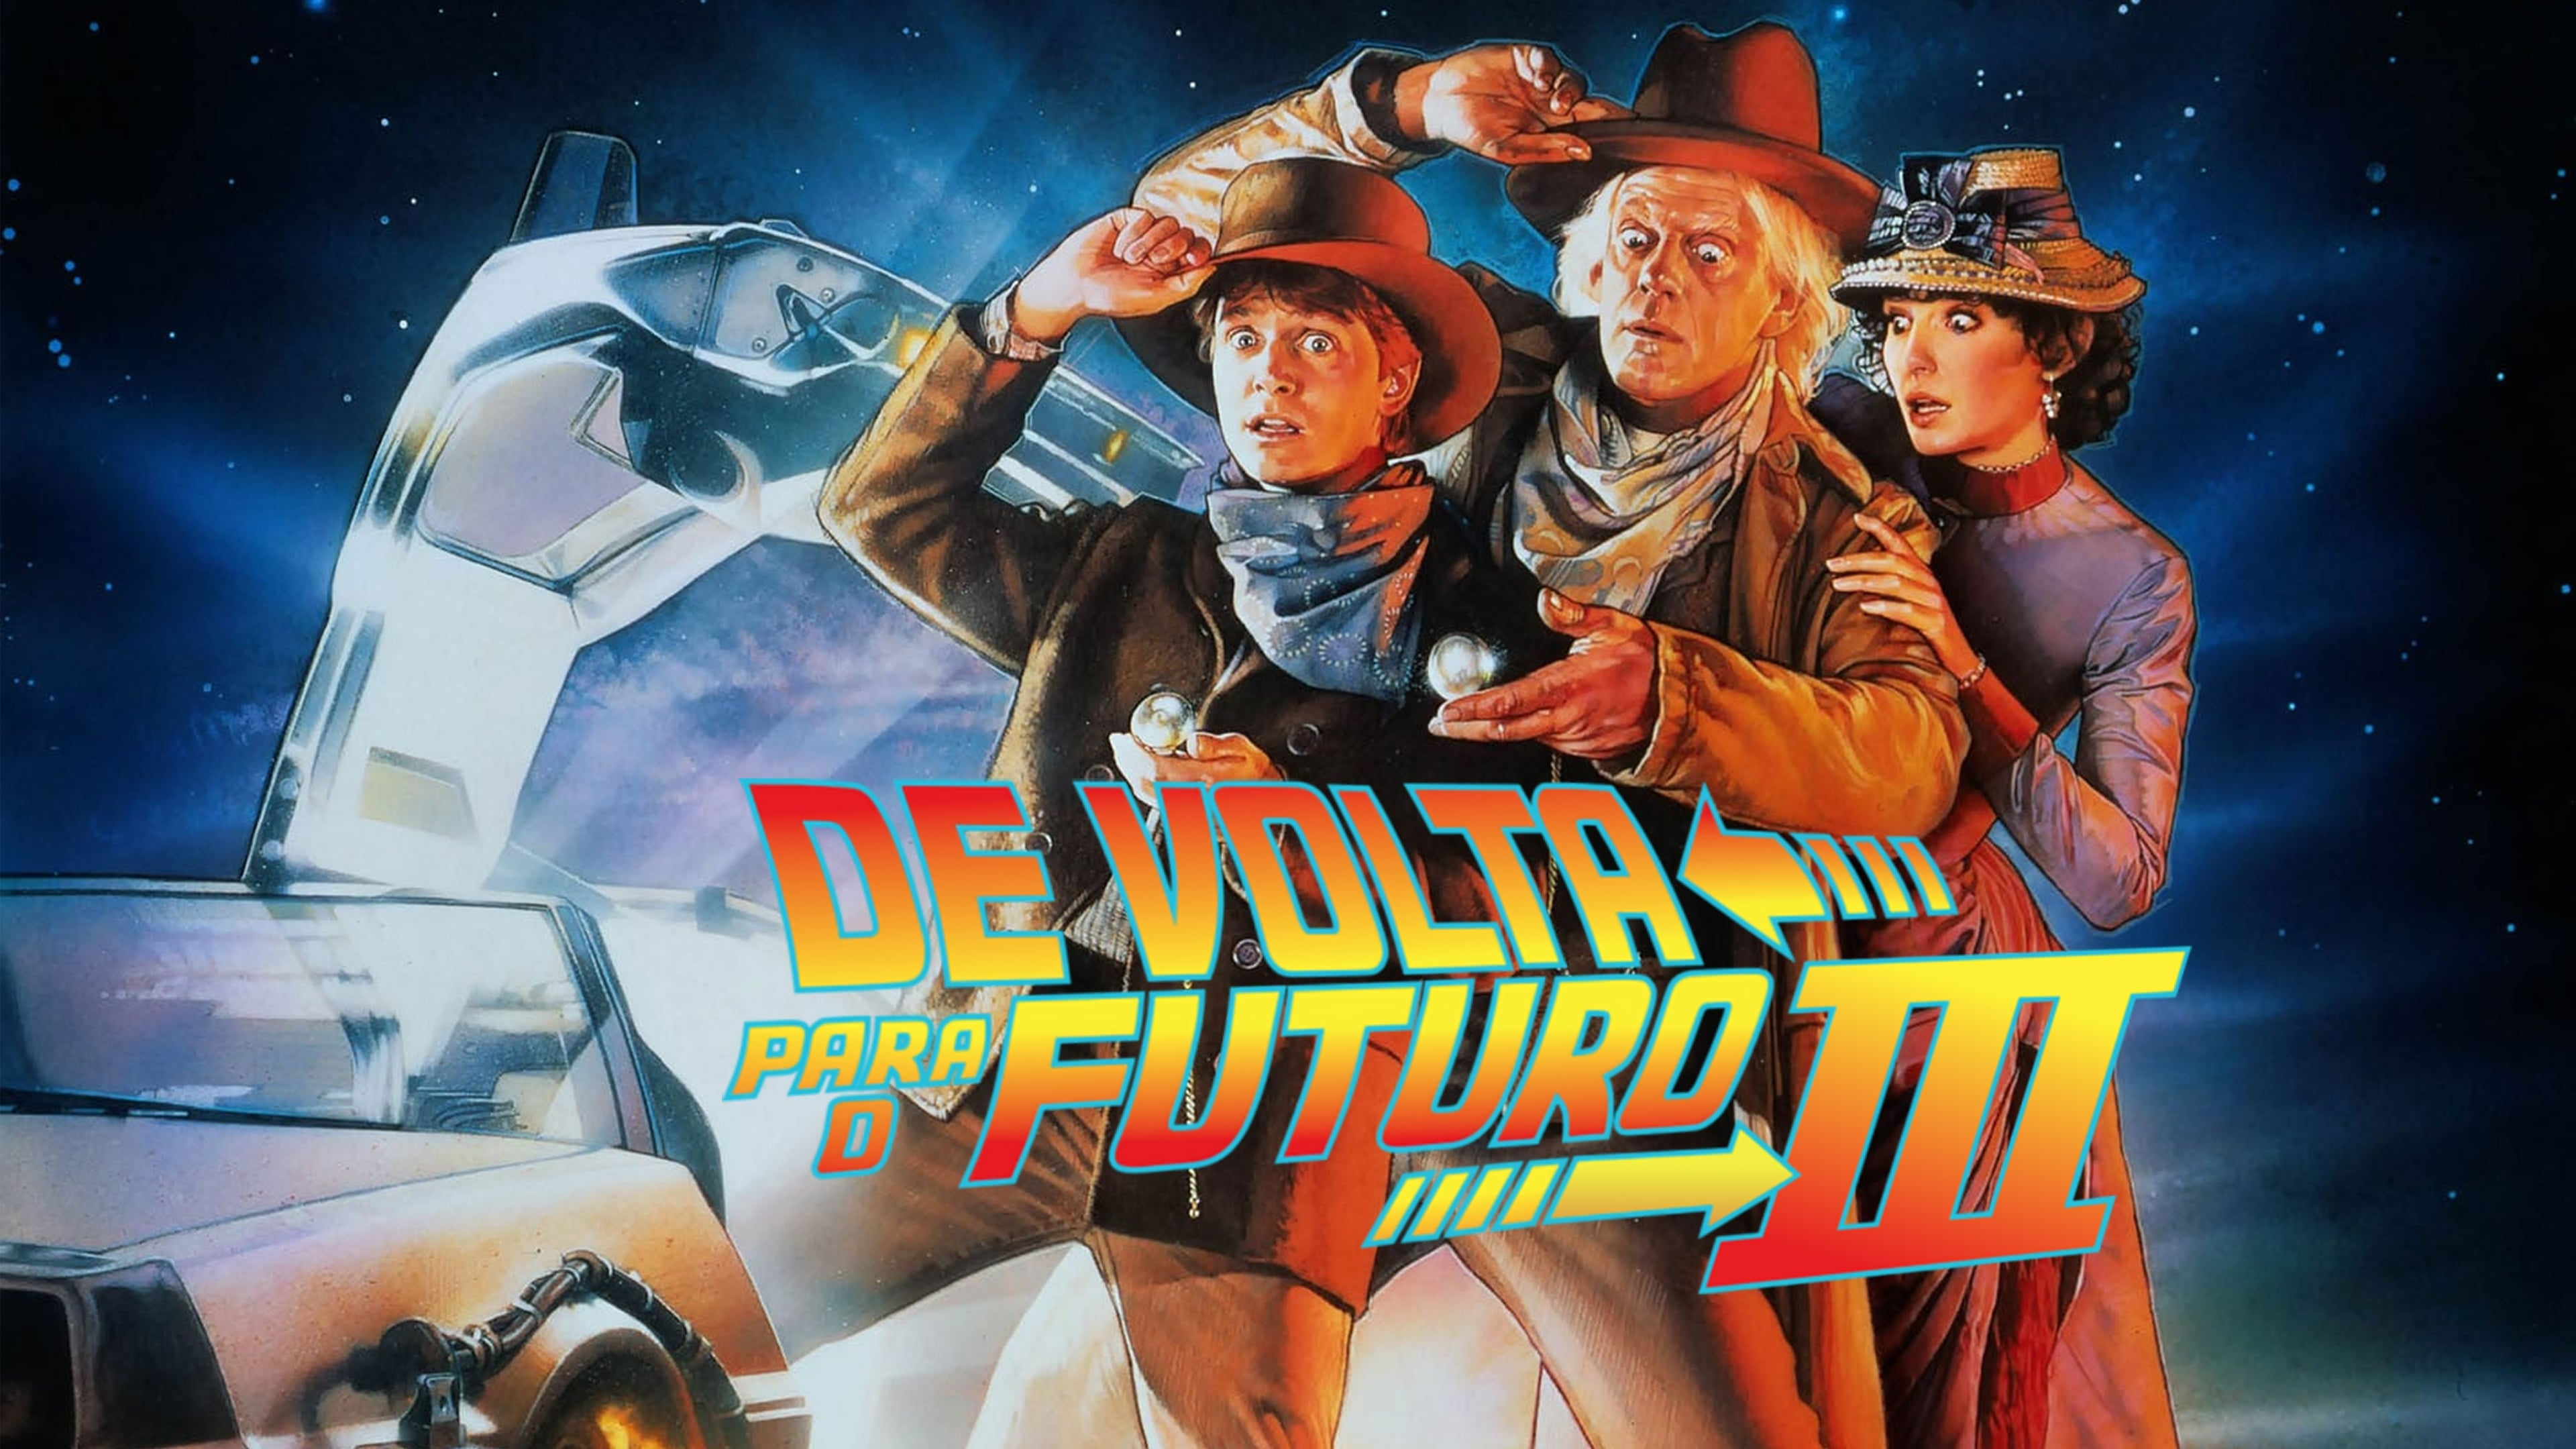 Back to the Future Part III Trailer